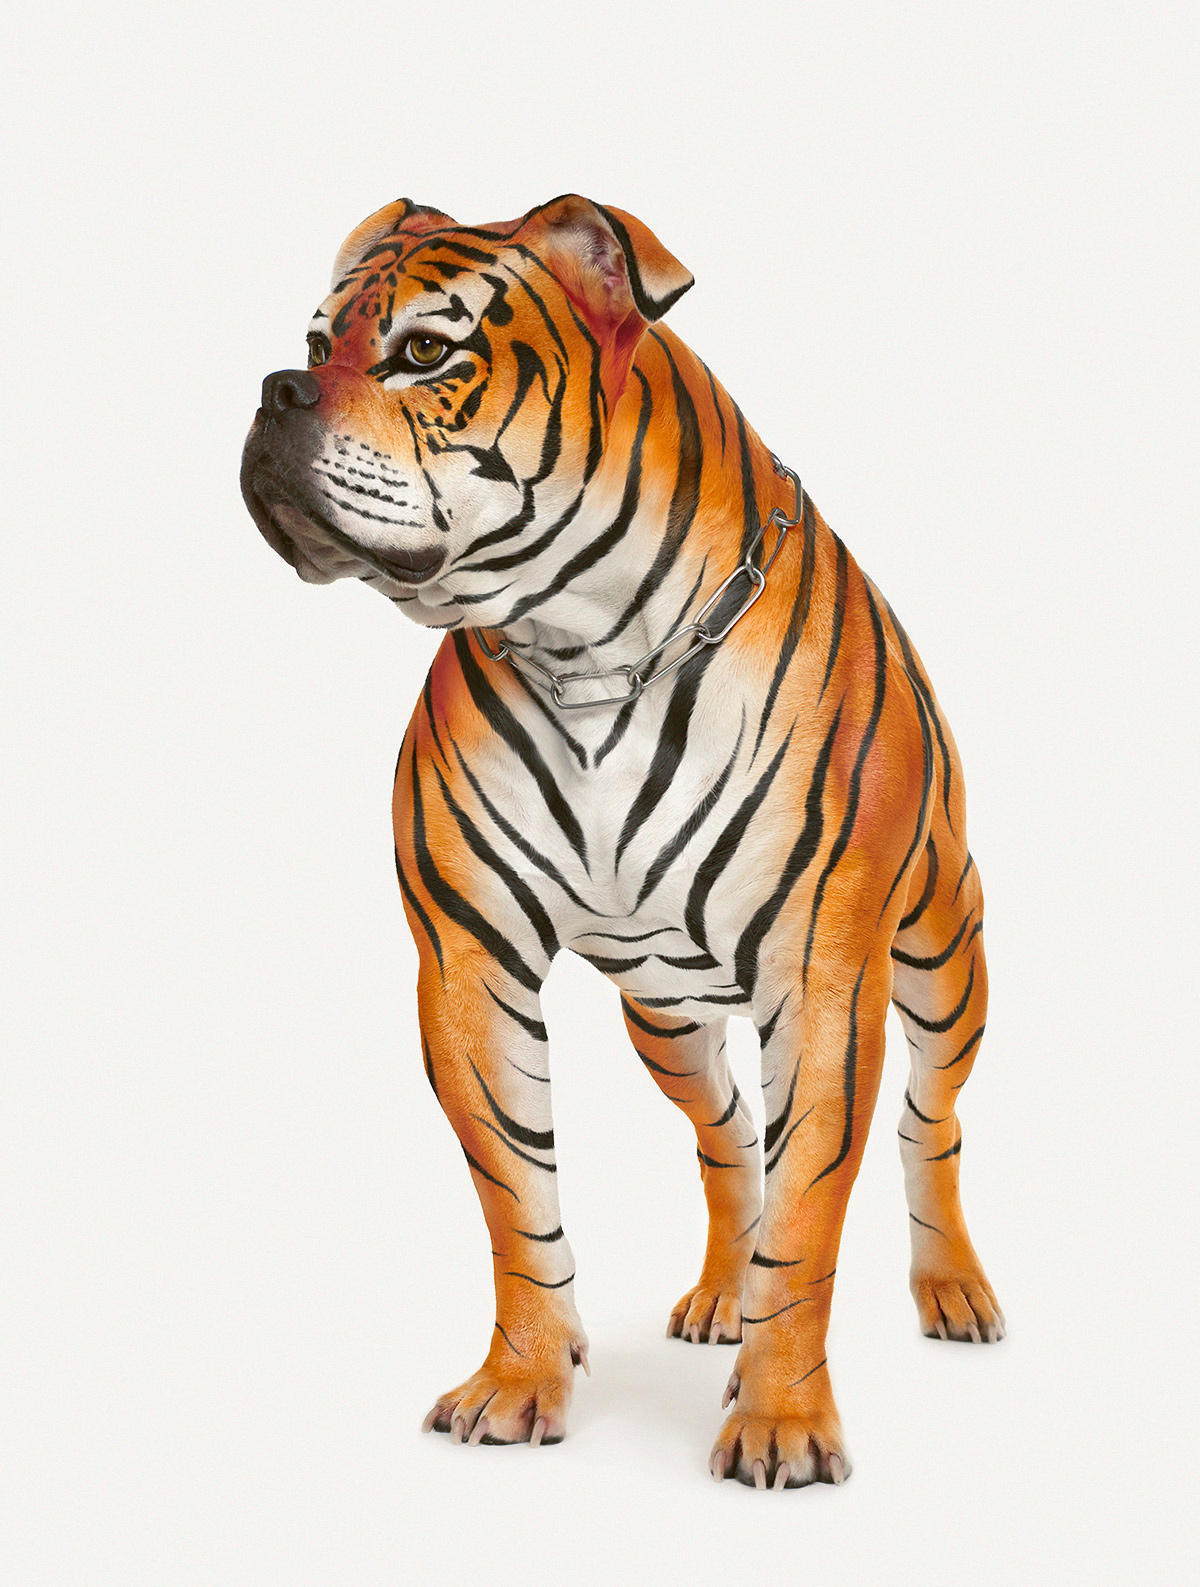 Adobe Portfolio Cristian Girotto retouch Photo Manipulation  photoshop Photo Montage Post Production campaign Save Our Tigers tigers